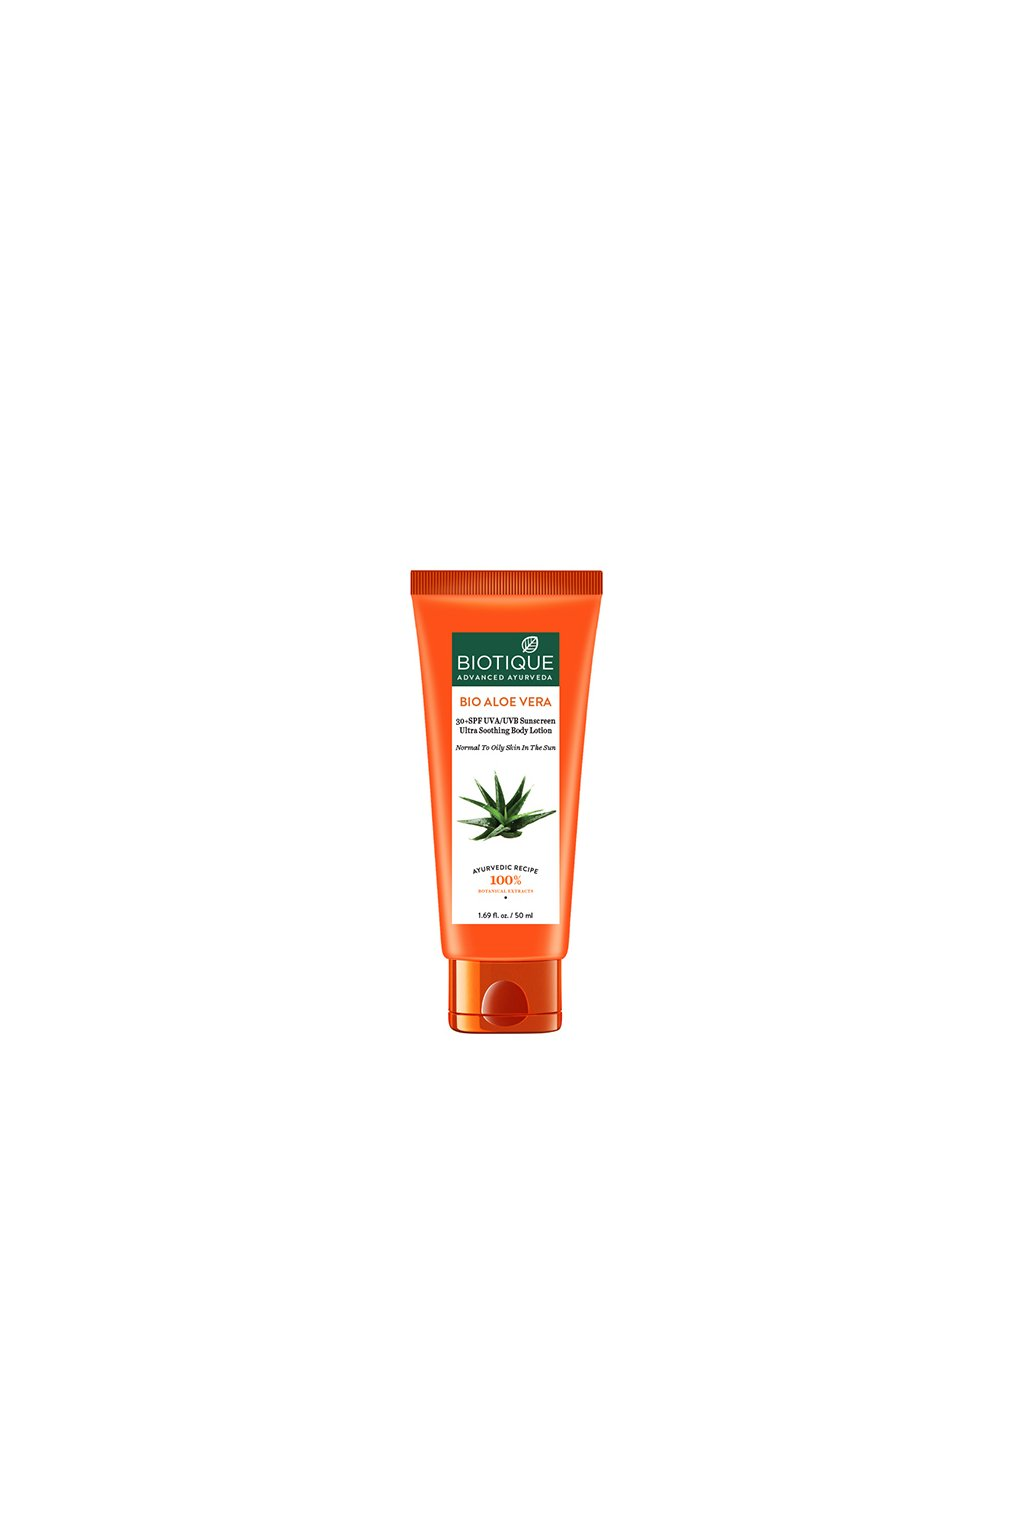 Bio aloe vera sunscreen – 50 ml[3432]